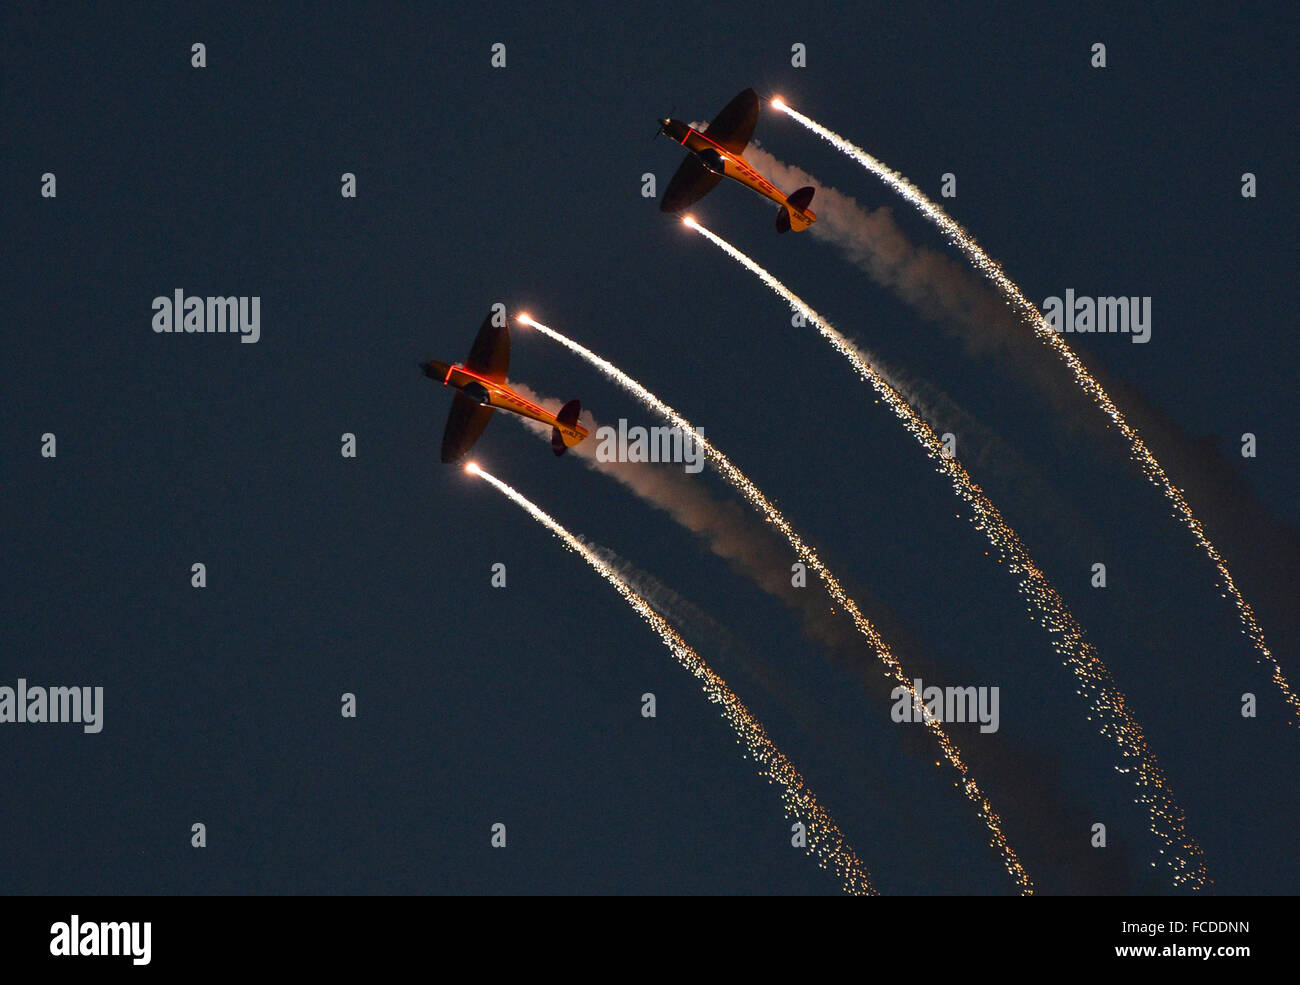 Bahrain Air Show, 21st January 2016. The Twister aerobatic team perform a stunning aerial ballet with pyrotechnics Stock Photo